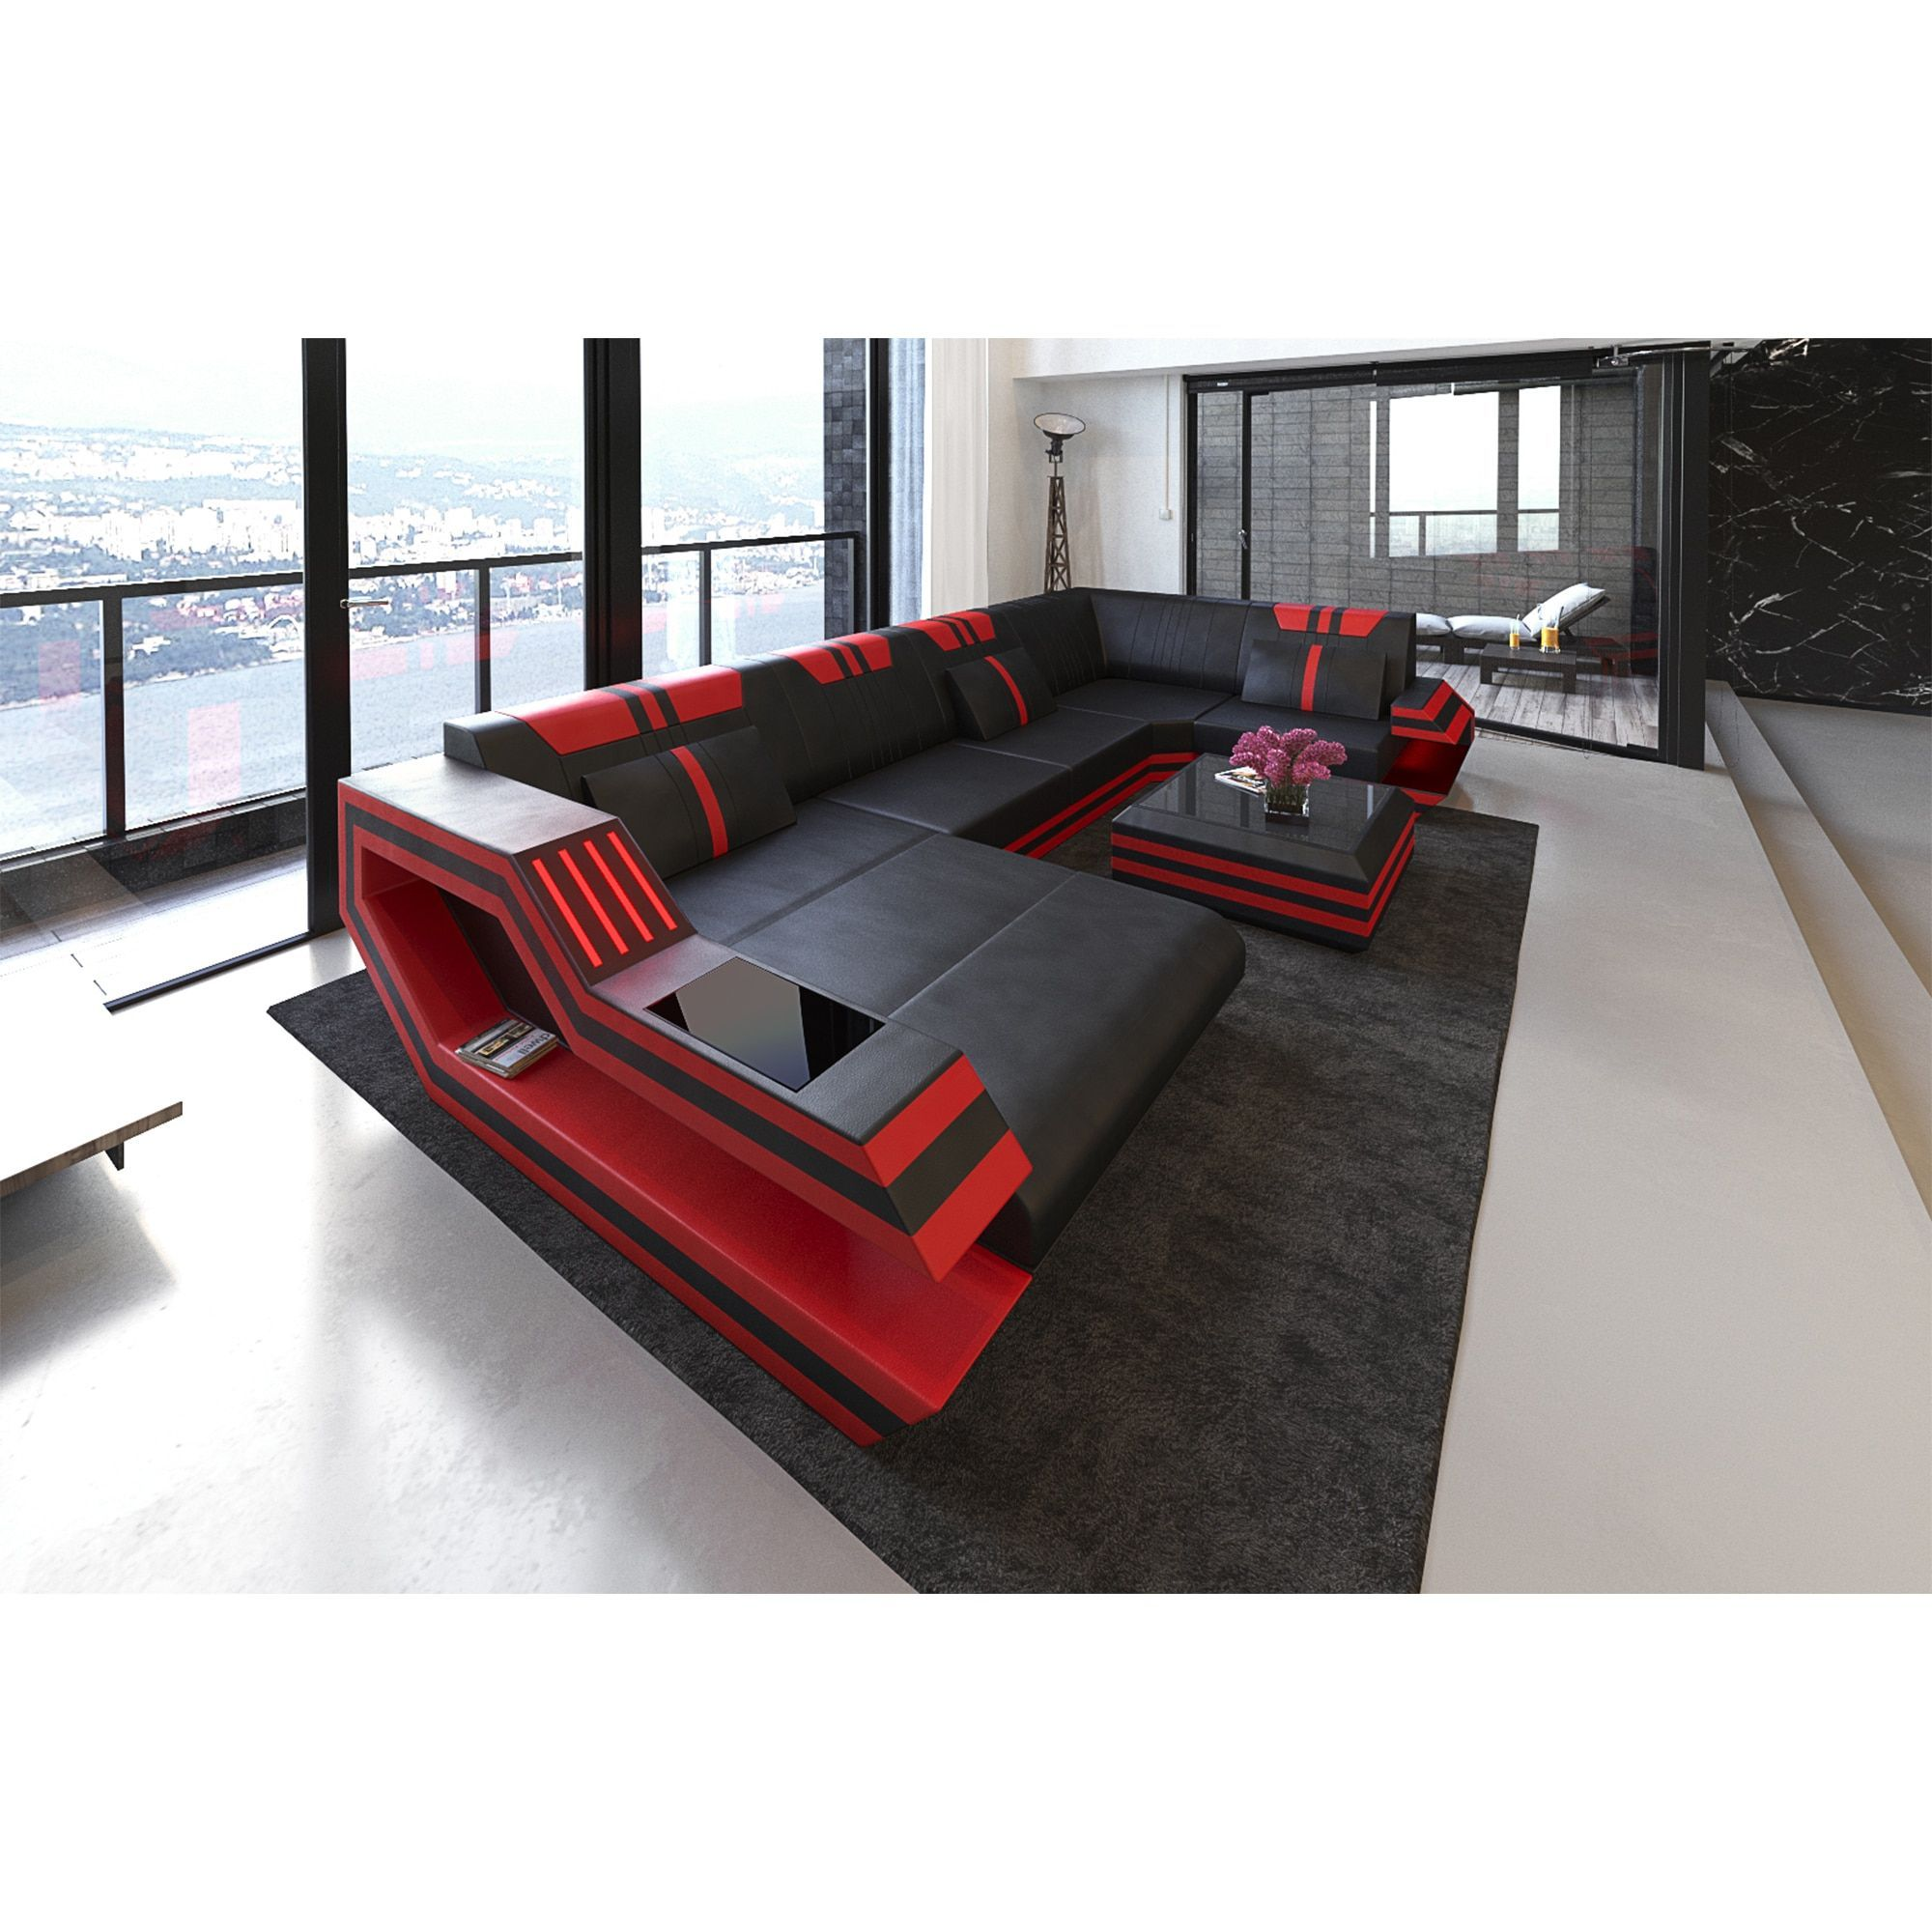 Sectional Sofa u0027Hollywoodu0027 with LED Lights and